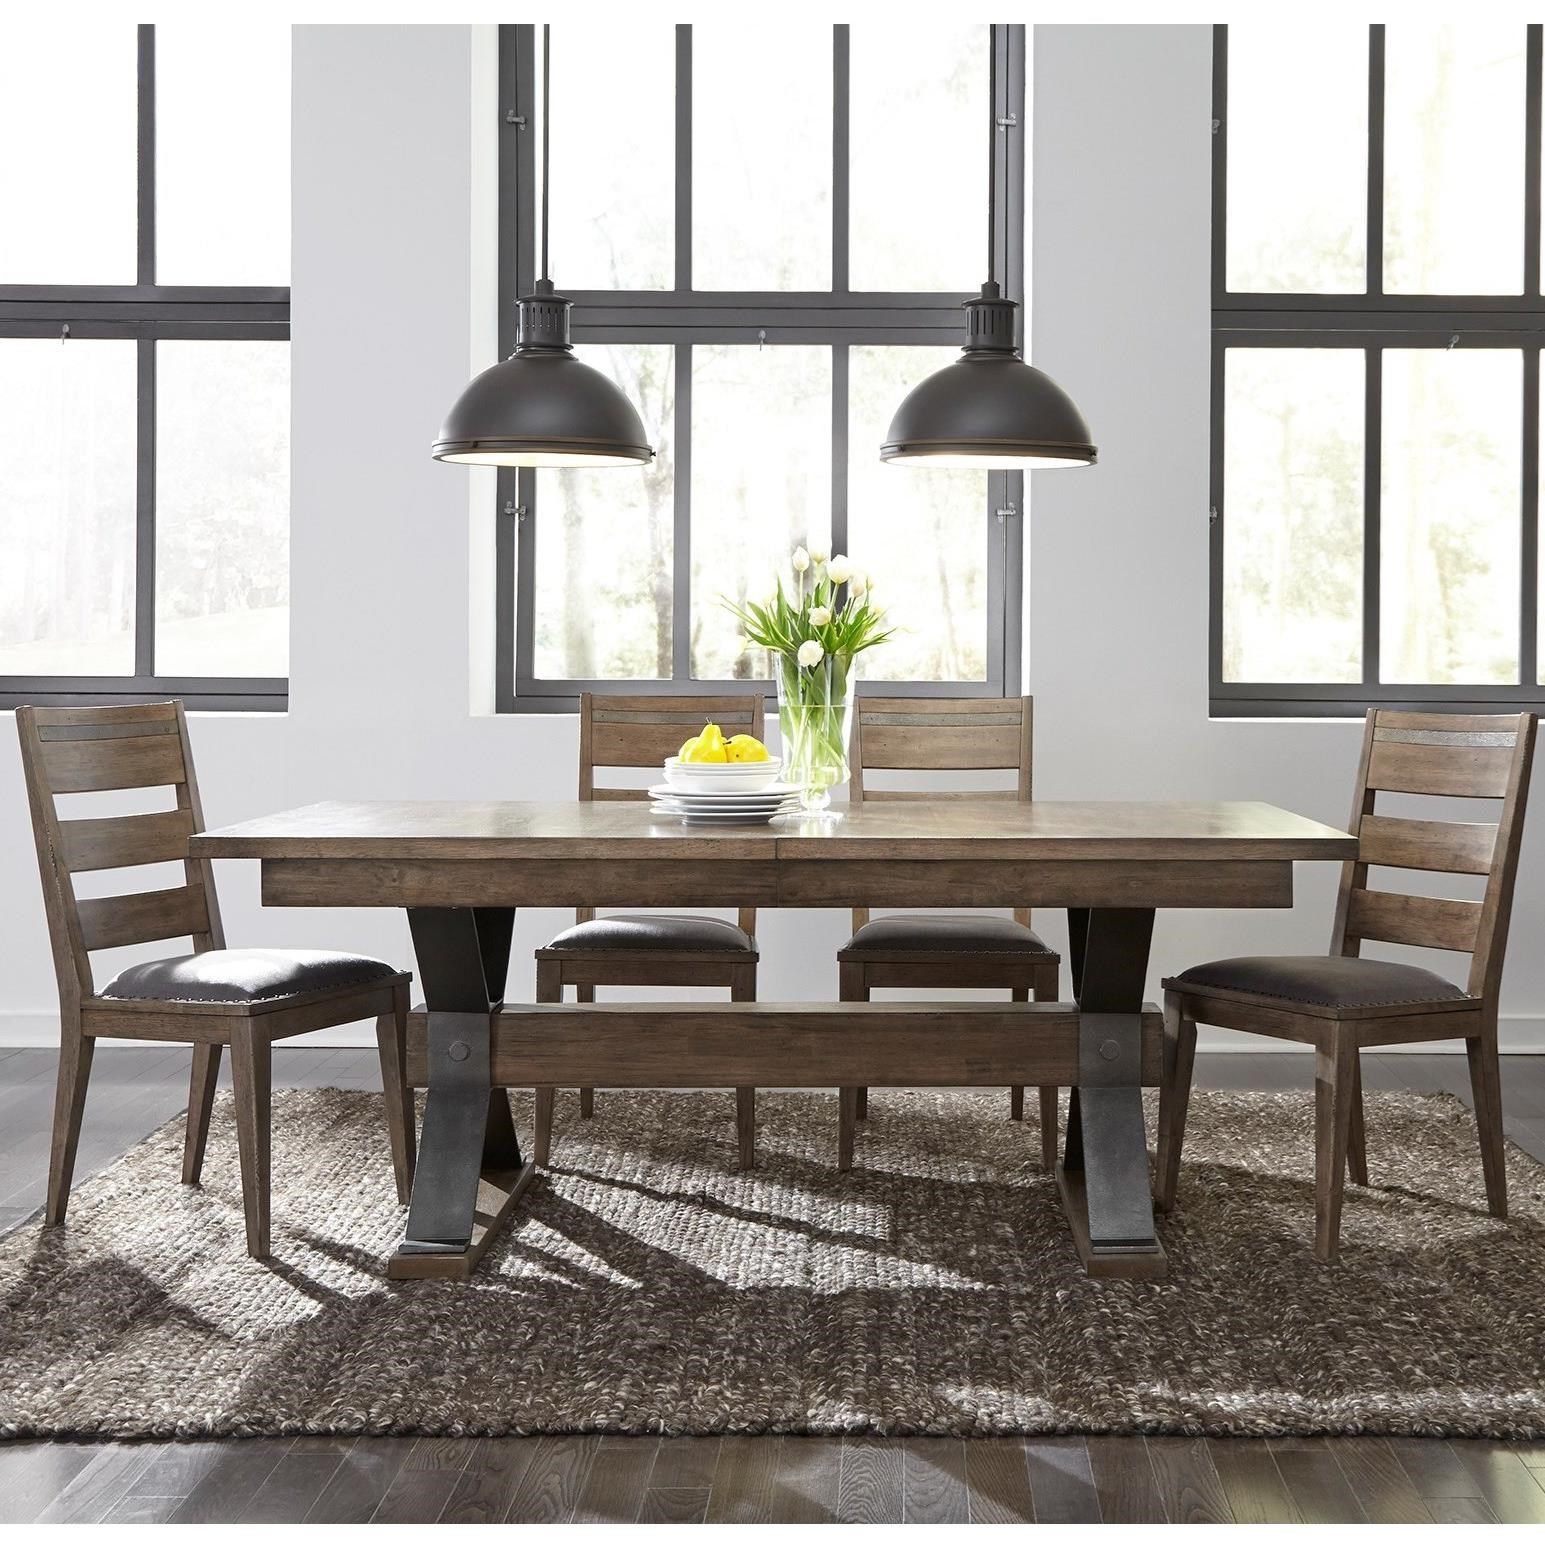 Sonoma Road 5 Piece Table and Chair Set  by Liberty Furniture at Johnny Janosik